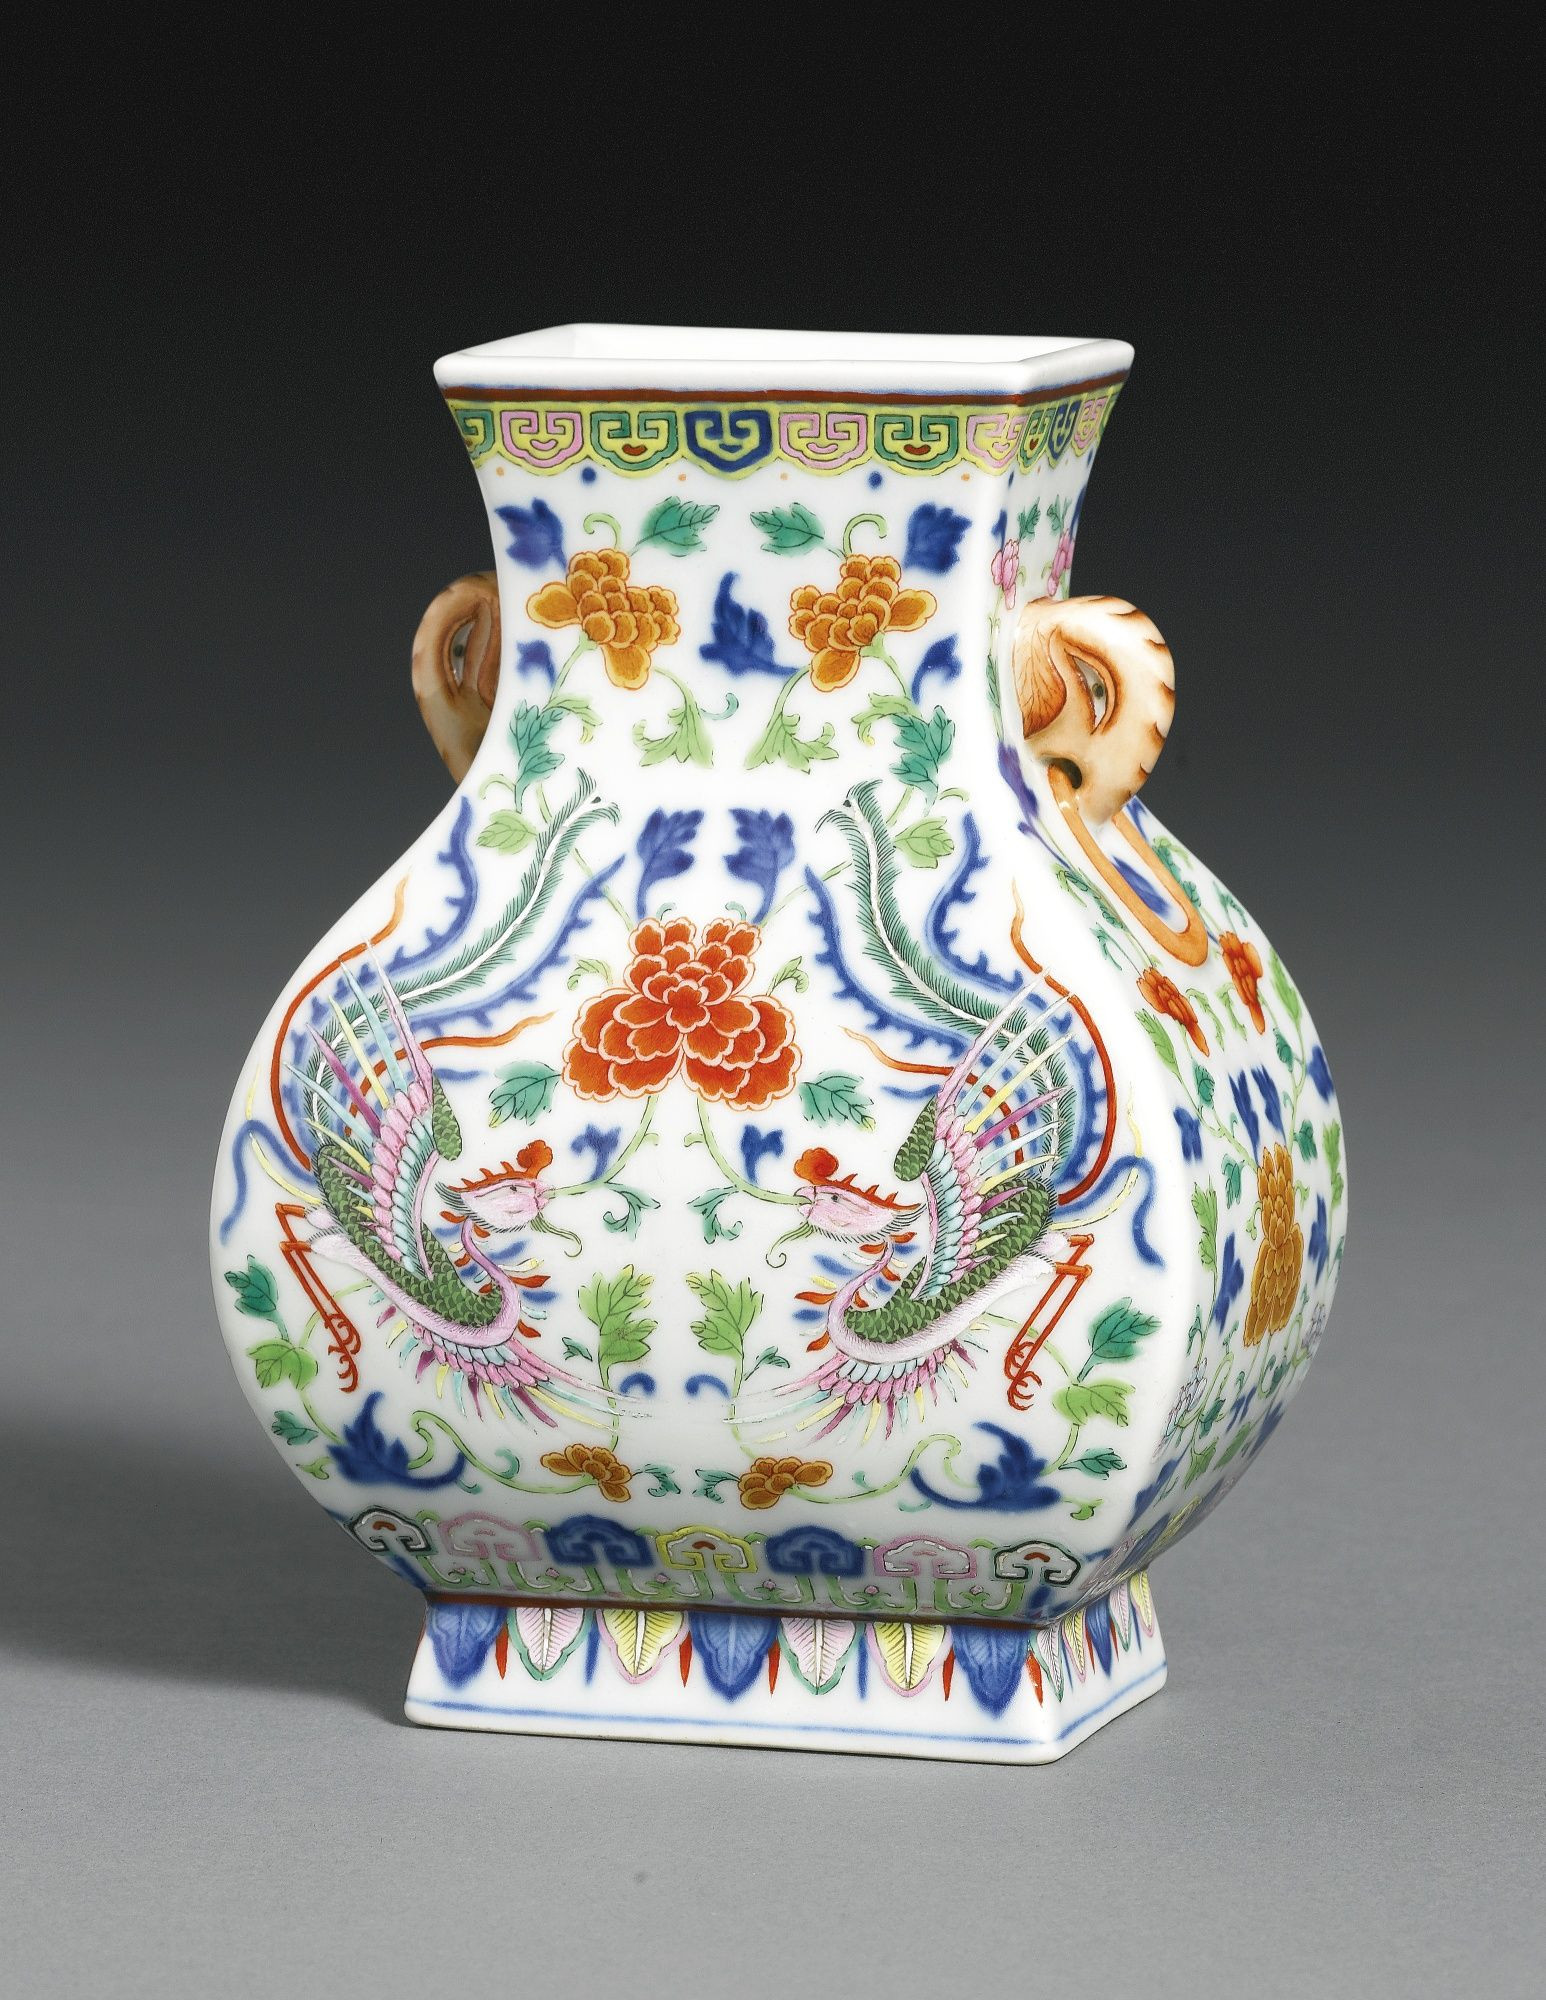 qianlong vase value of a fine and rare underglaze blue polychrome enamel phoenix vase intended for a fine and rare underglaze blue polychrome enamel phoenix vase fanghu qianlong